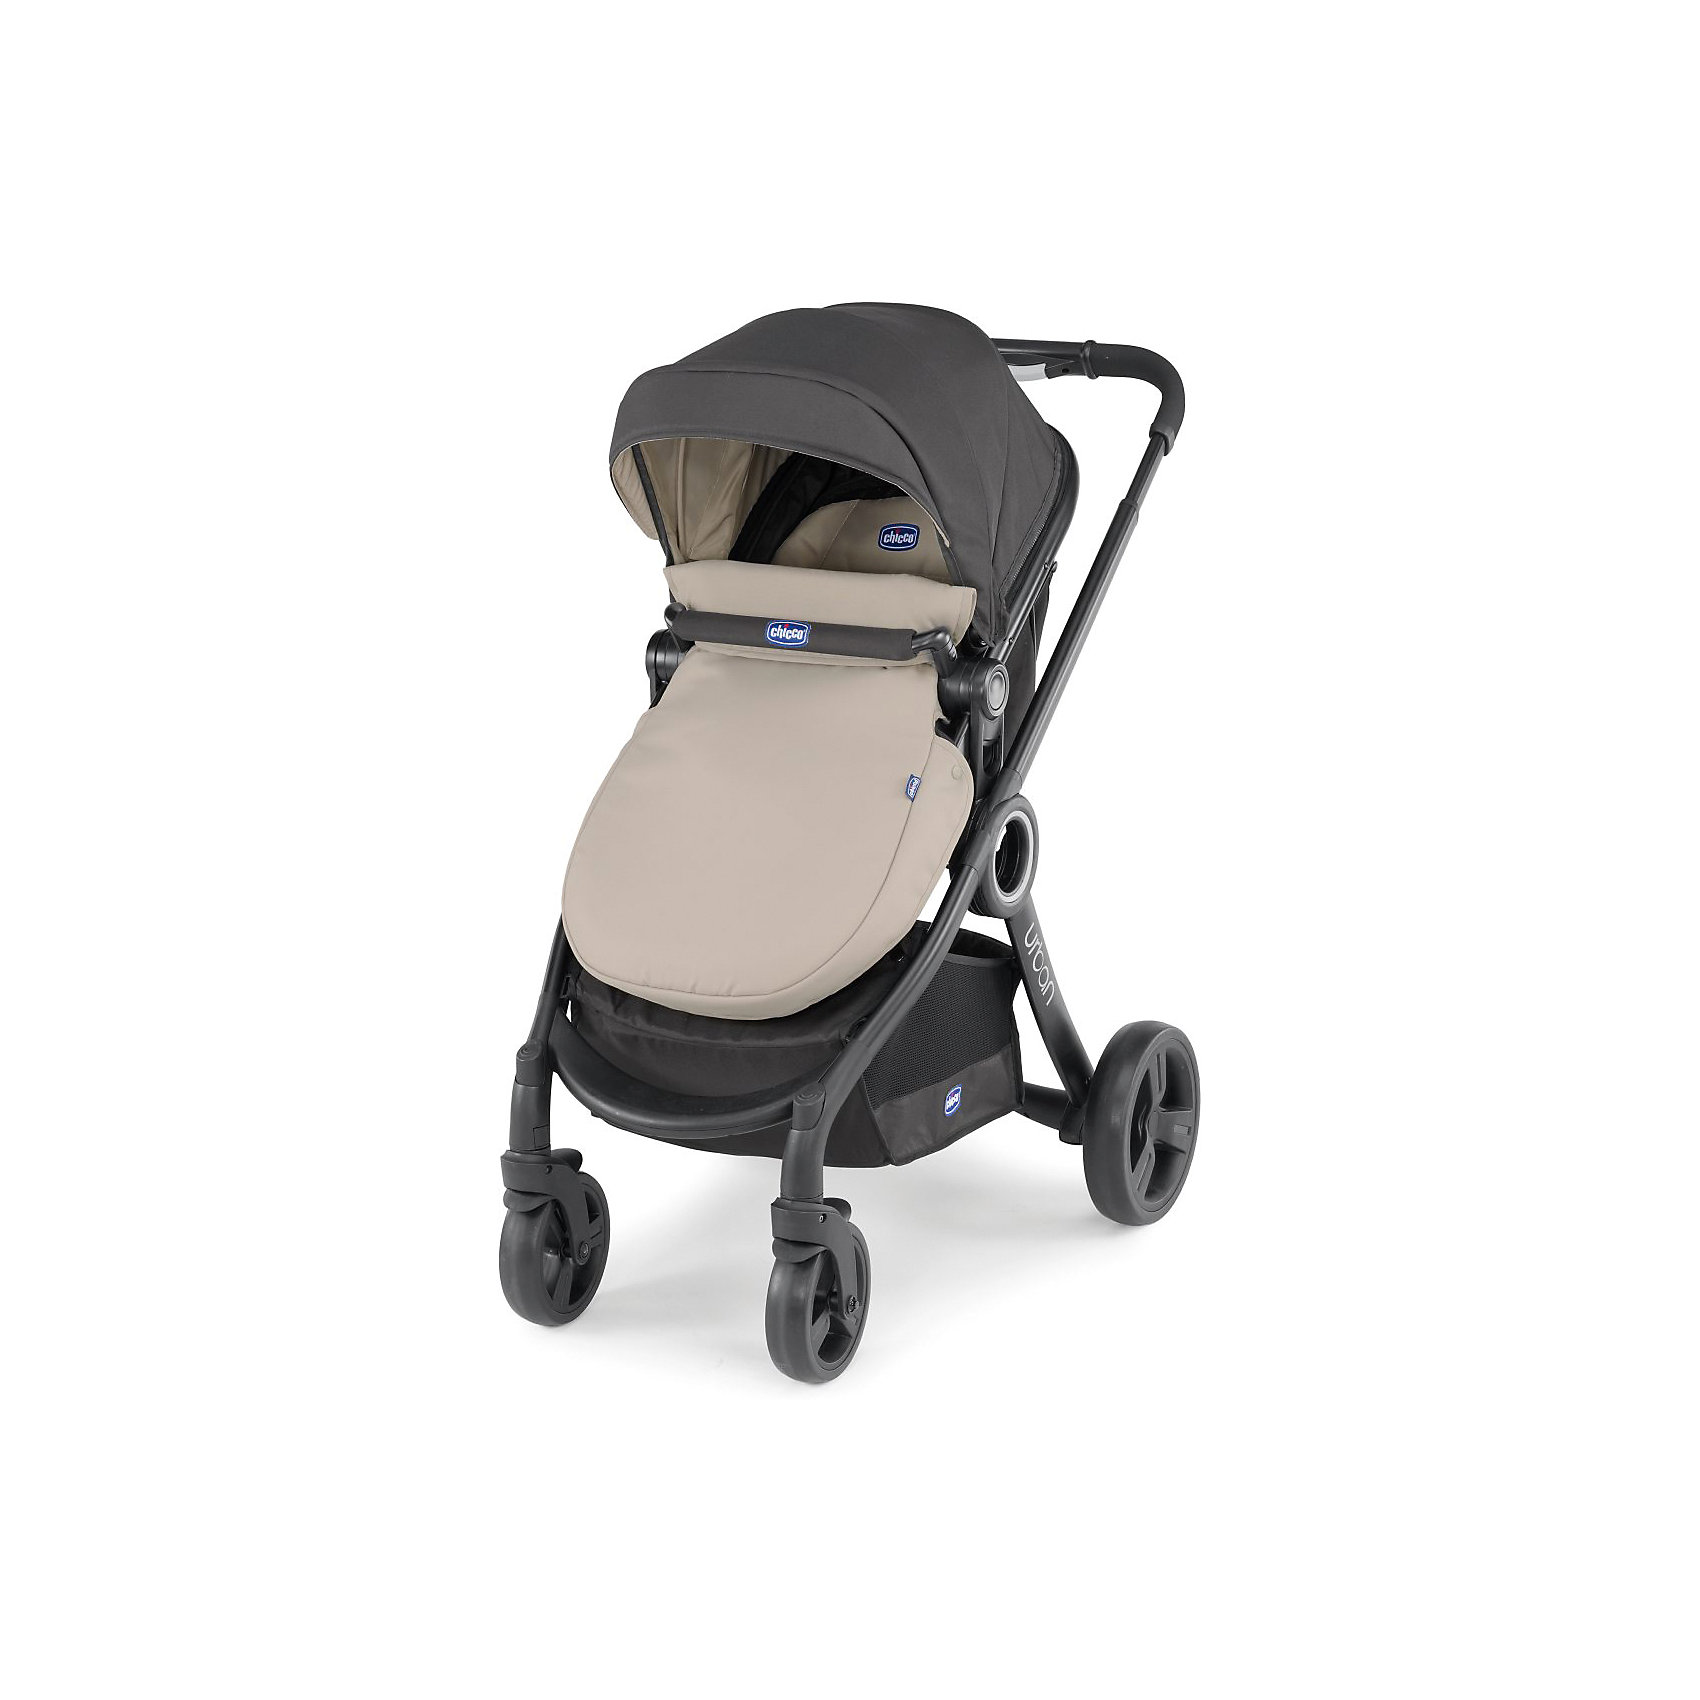 CHICCO Аксессуары к коляске URBAN DUNE, CHICCO chicco color pack 06079358990000 07co1403ant набор аксессуаров для коляски urban plus anthracite